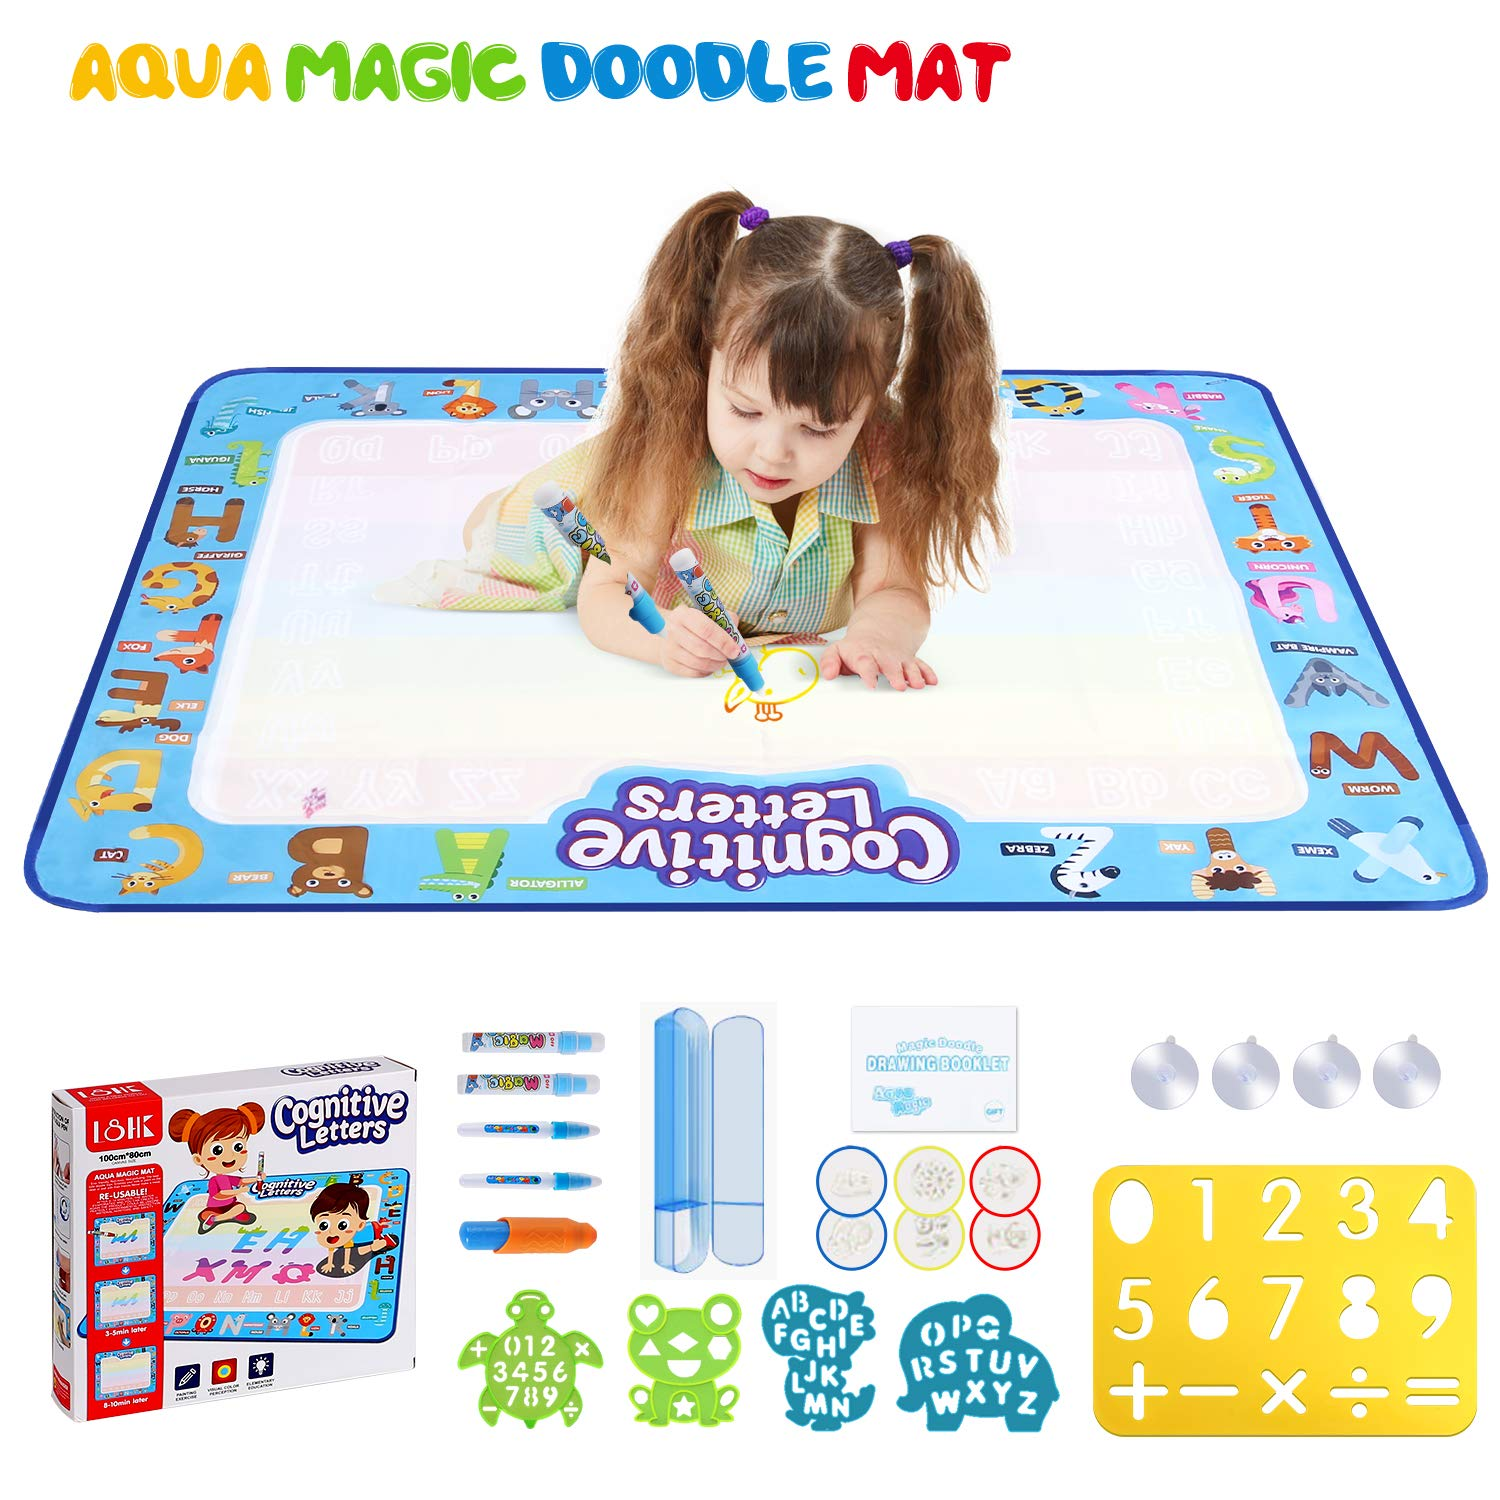 Wevon Aqua Magic Doodle Mat, Extra Large Coloring Water Drawing Mat, Mess Free Doodling Painting Educational Writing Mat, Gift for Toddlers Kids Boys Girls, Age 3 4 5 6 7 8 Year Old - 40 x 32 inch by Wevon